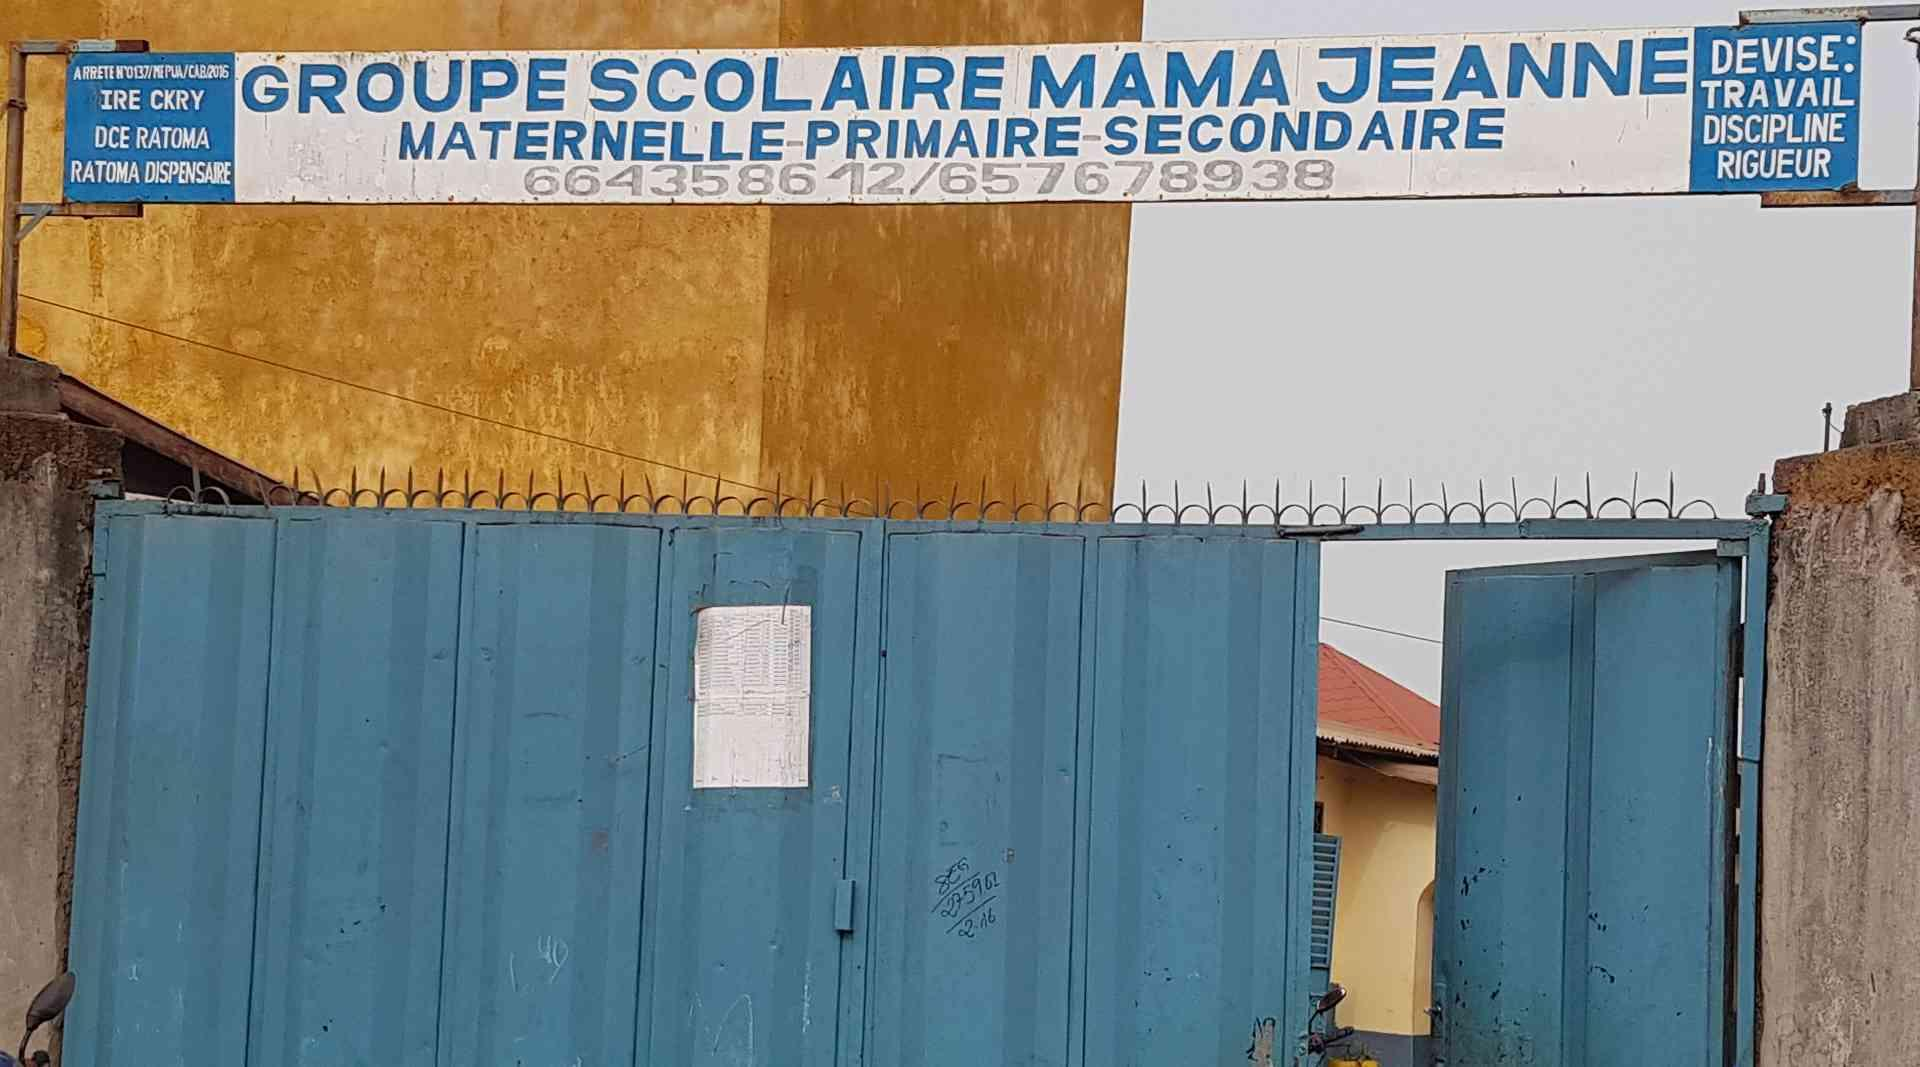 Groupe Scolaire  Maman Jeanne